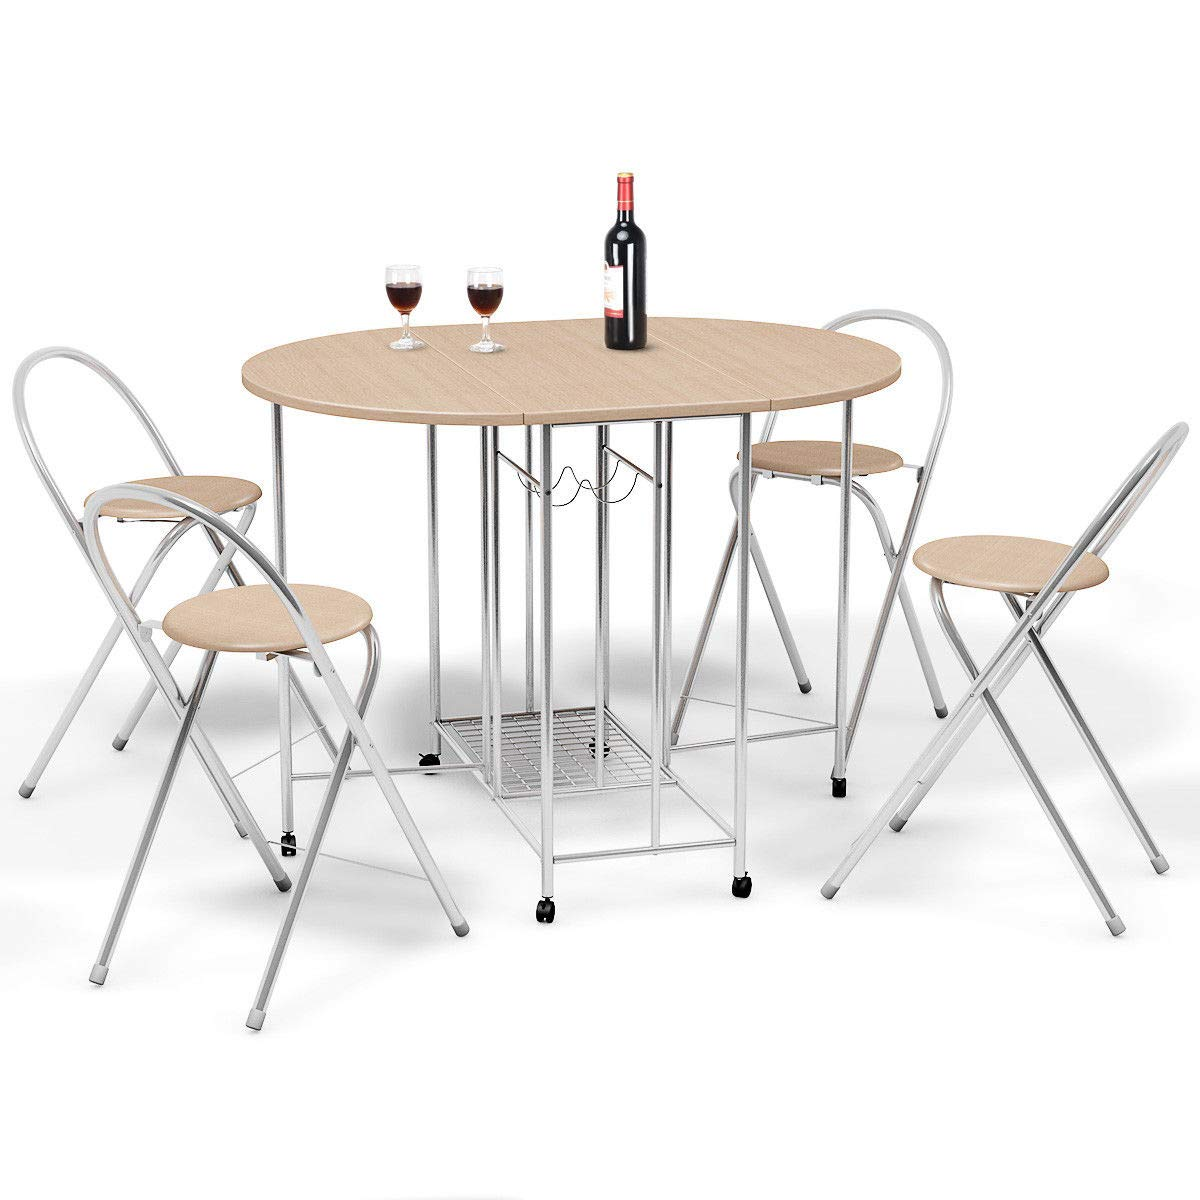 Giantex 5PC Foldable Dining Set with Shelf Storage and Wine Rack, 4 Chairs and Table Set with Wood Top and Metal Frame for Apartment and Kitchen Home Furniture by Giantex